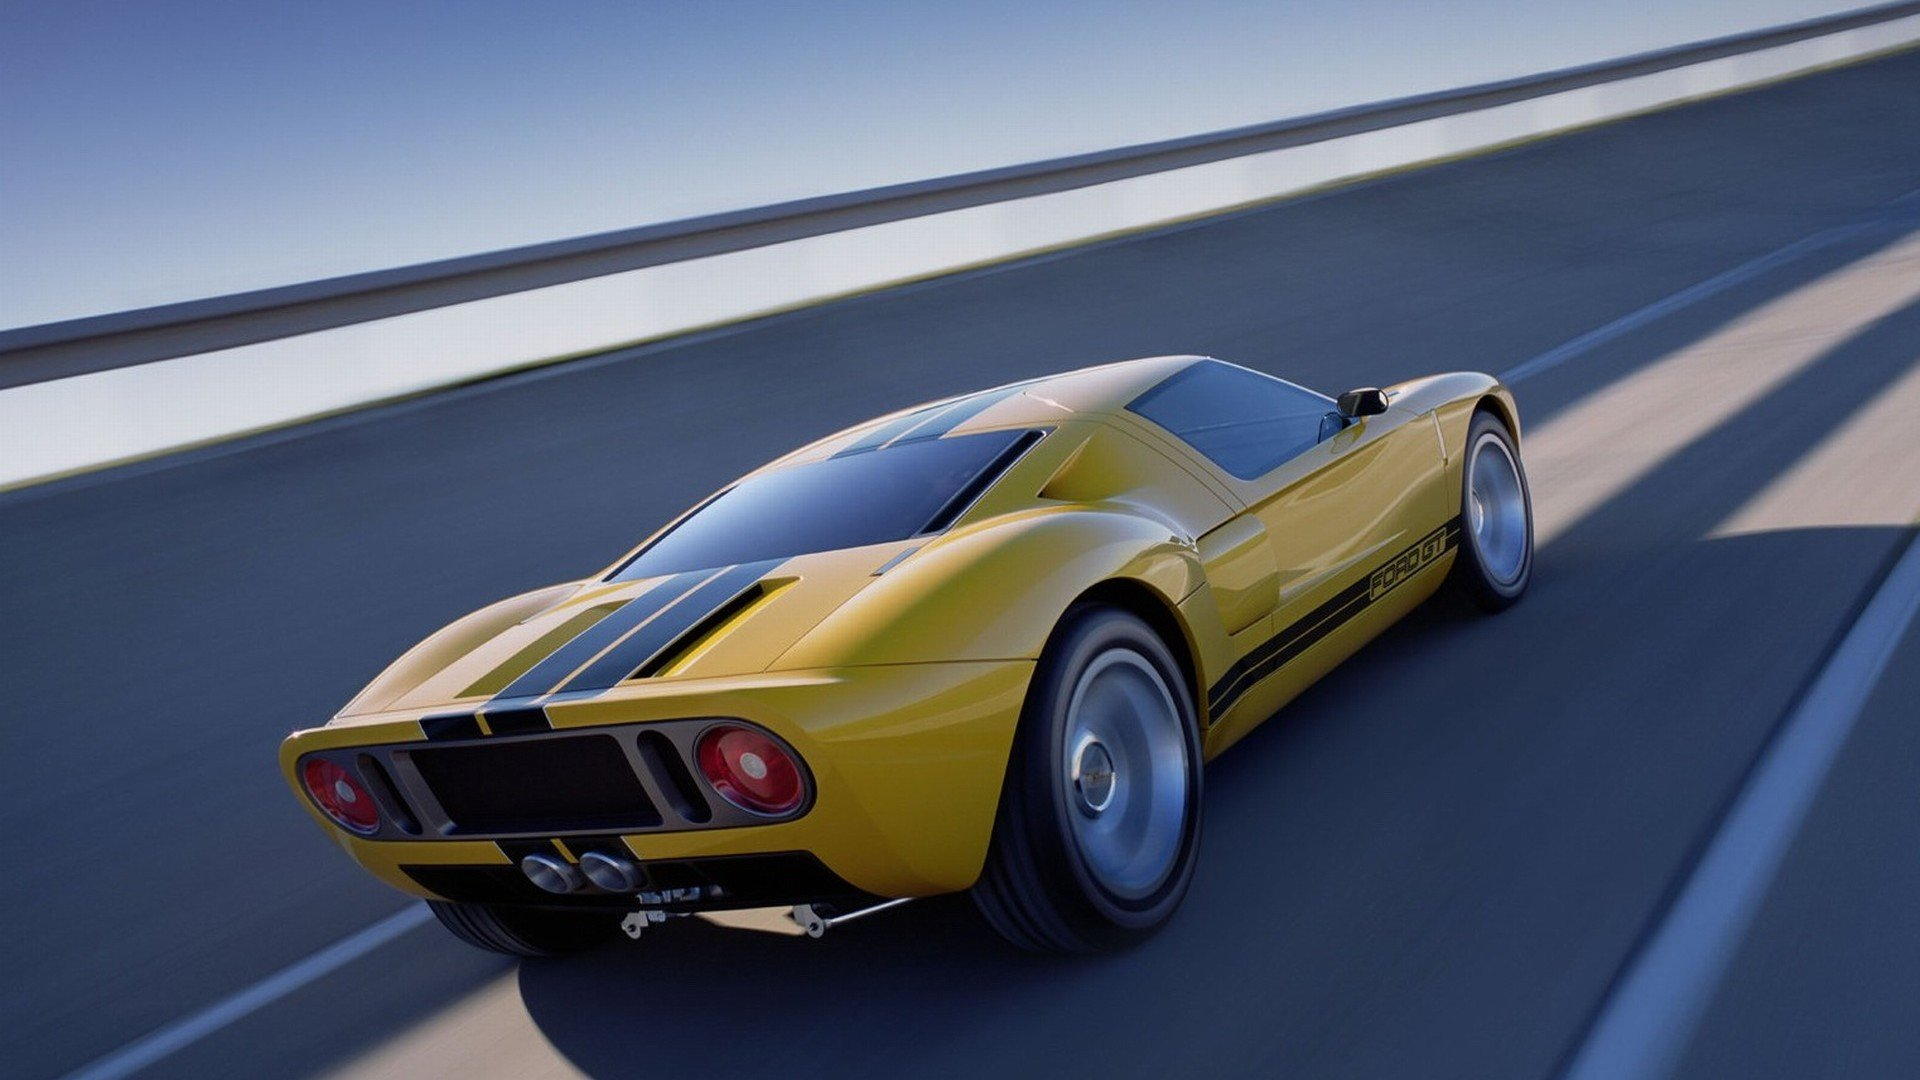 Ford GT40 Concept 2002 16 1920x1080 WallpapersFord GT 1920x1080 1920x1080